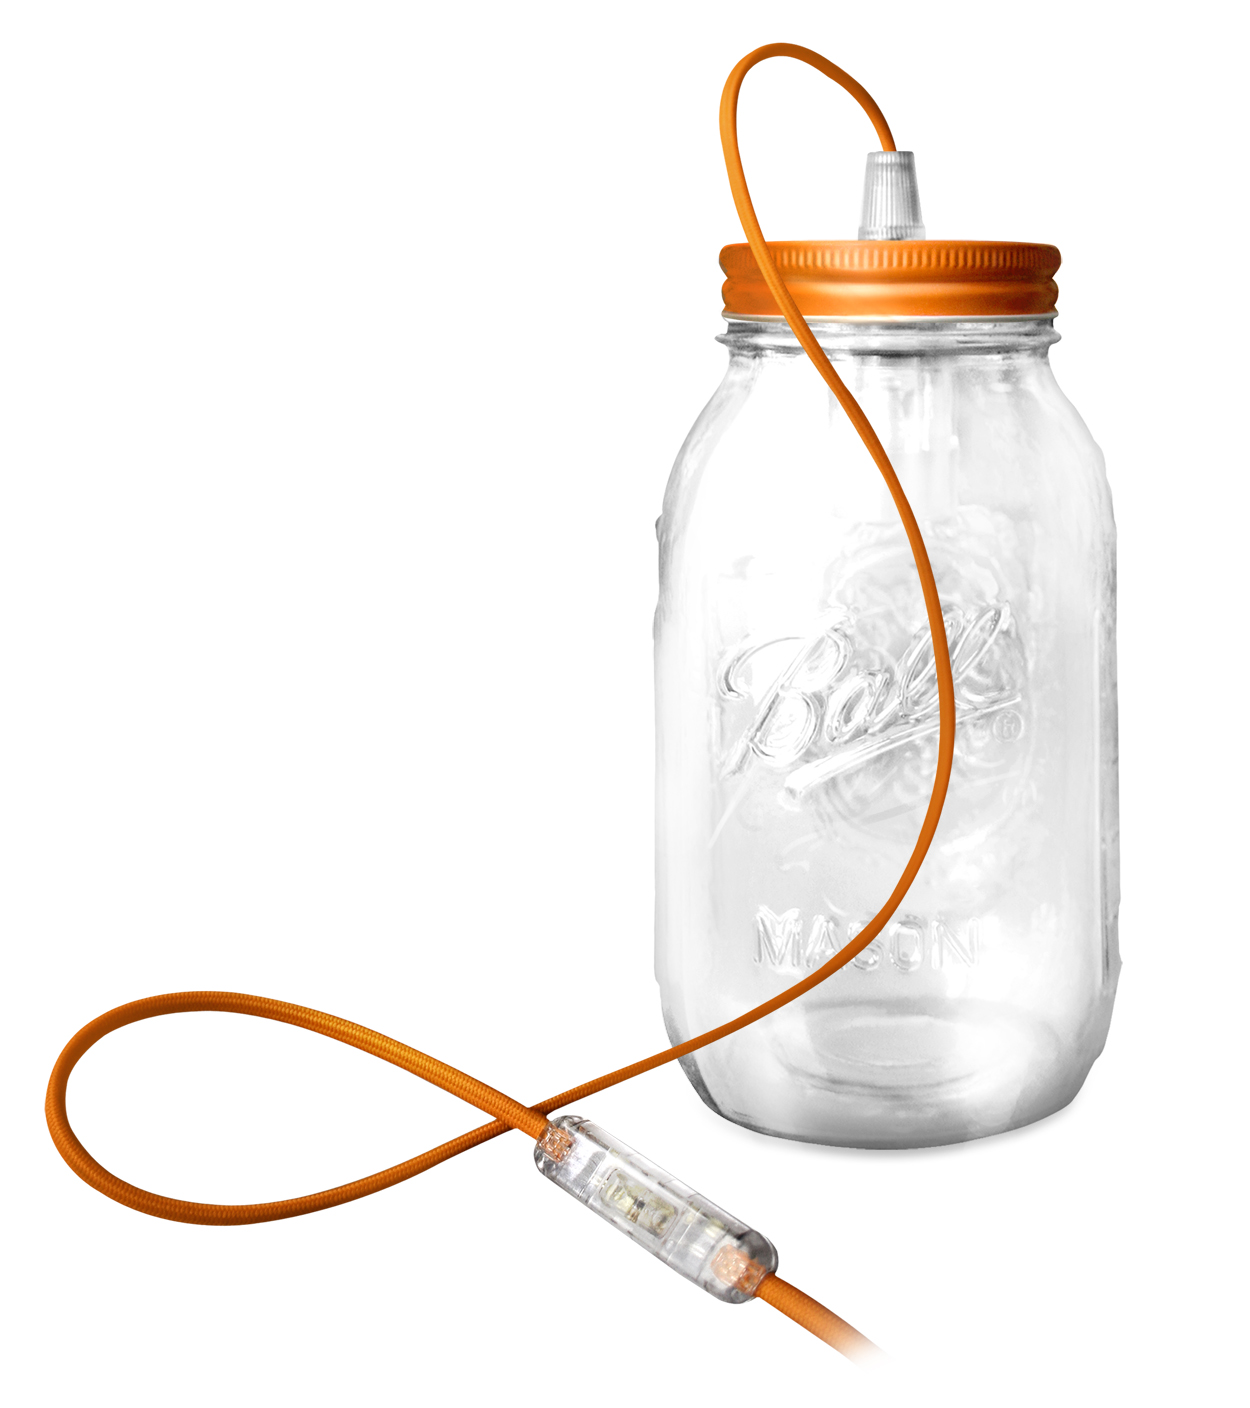 lampe a poser ball mason jar par fenel & arno Orange